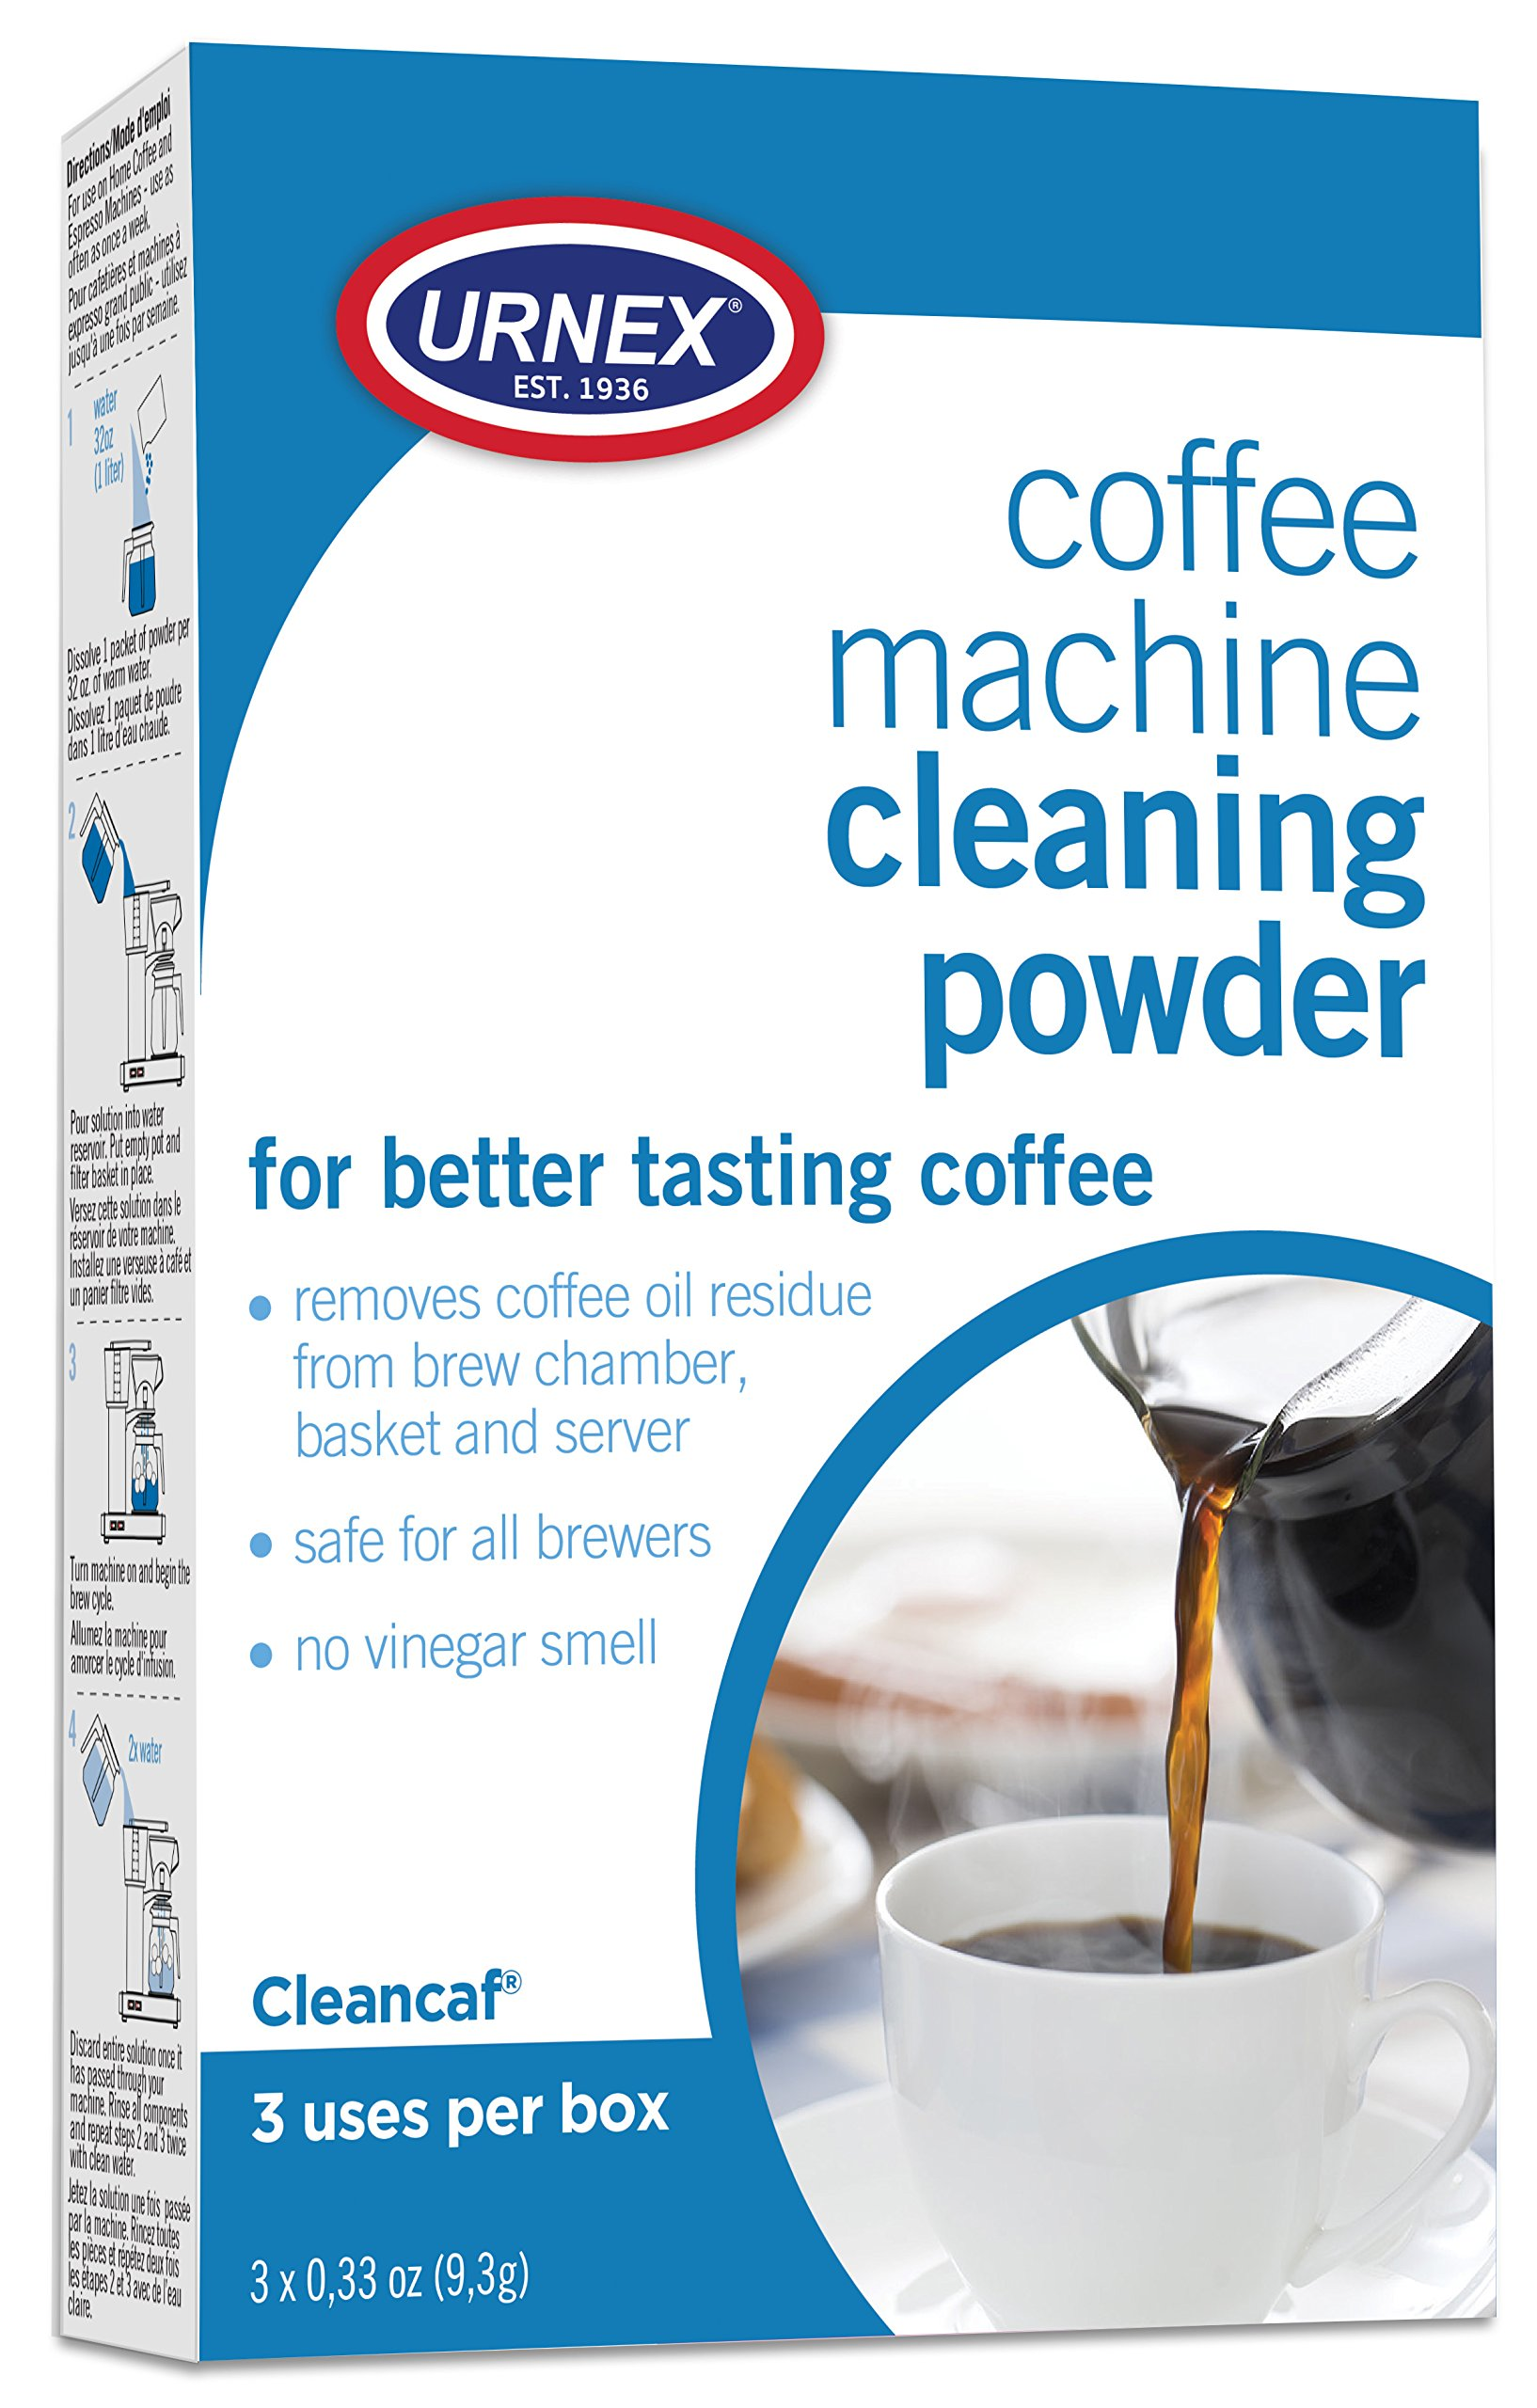 Urnex Coffee Maker and Espresso Machine Cleaner Cleancaf Powder - 3 Packets - Safe On Keurig